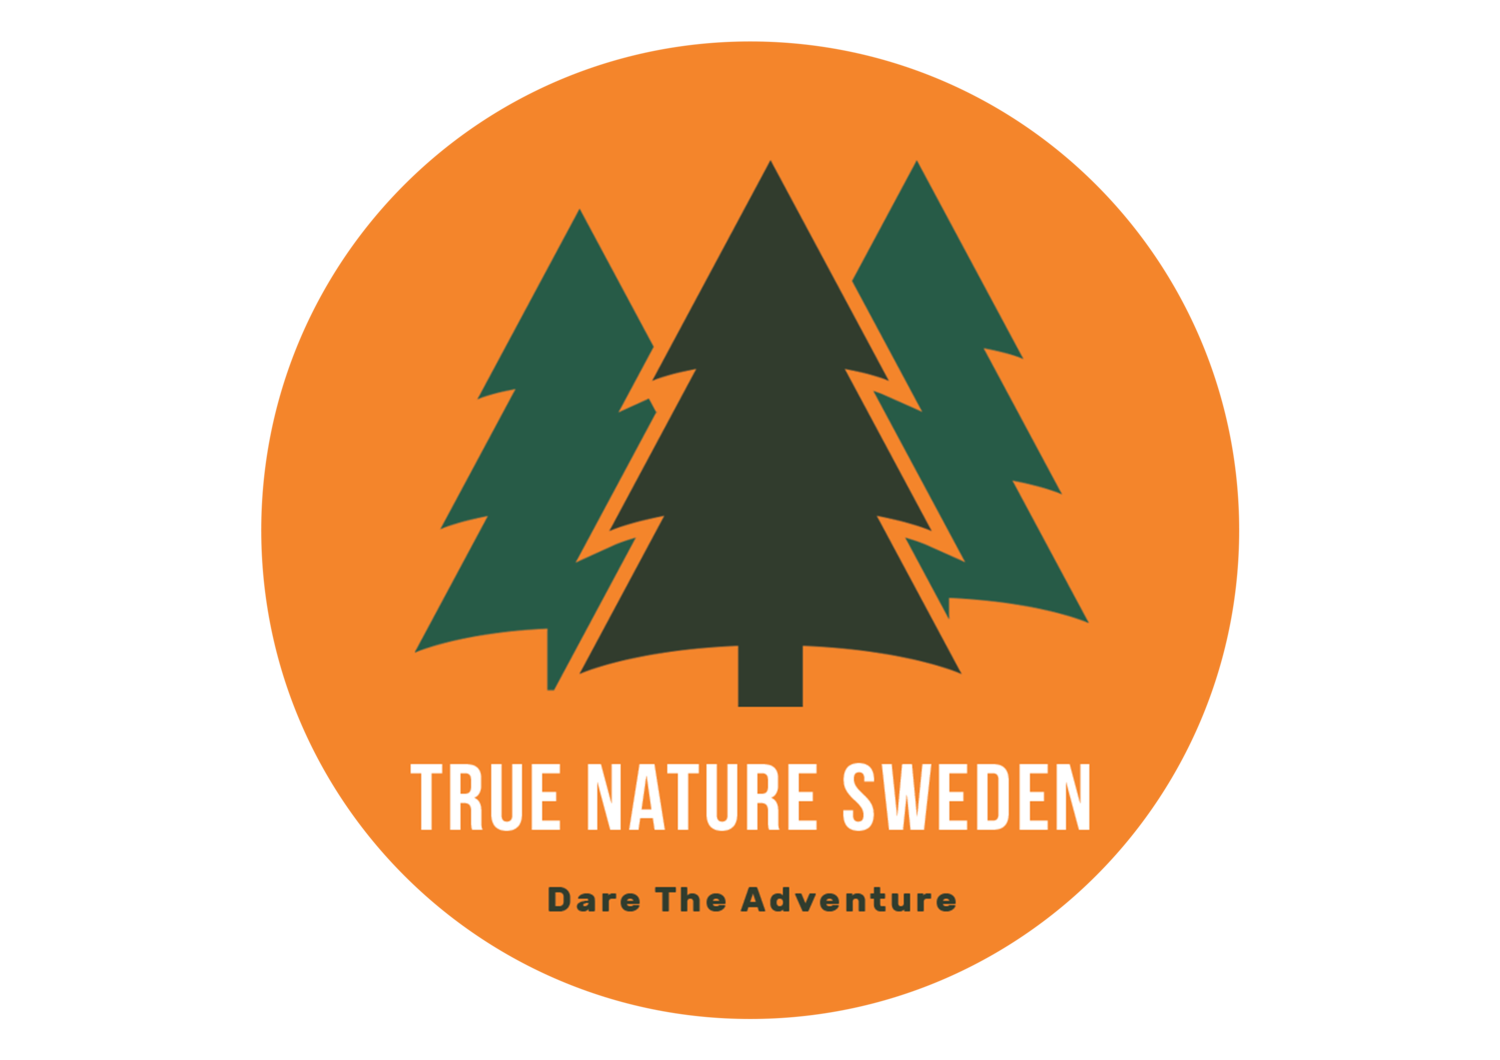 True Nature Sweden